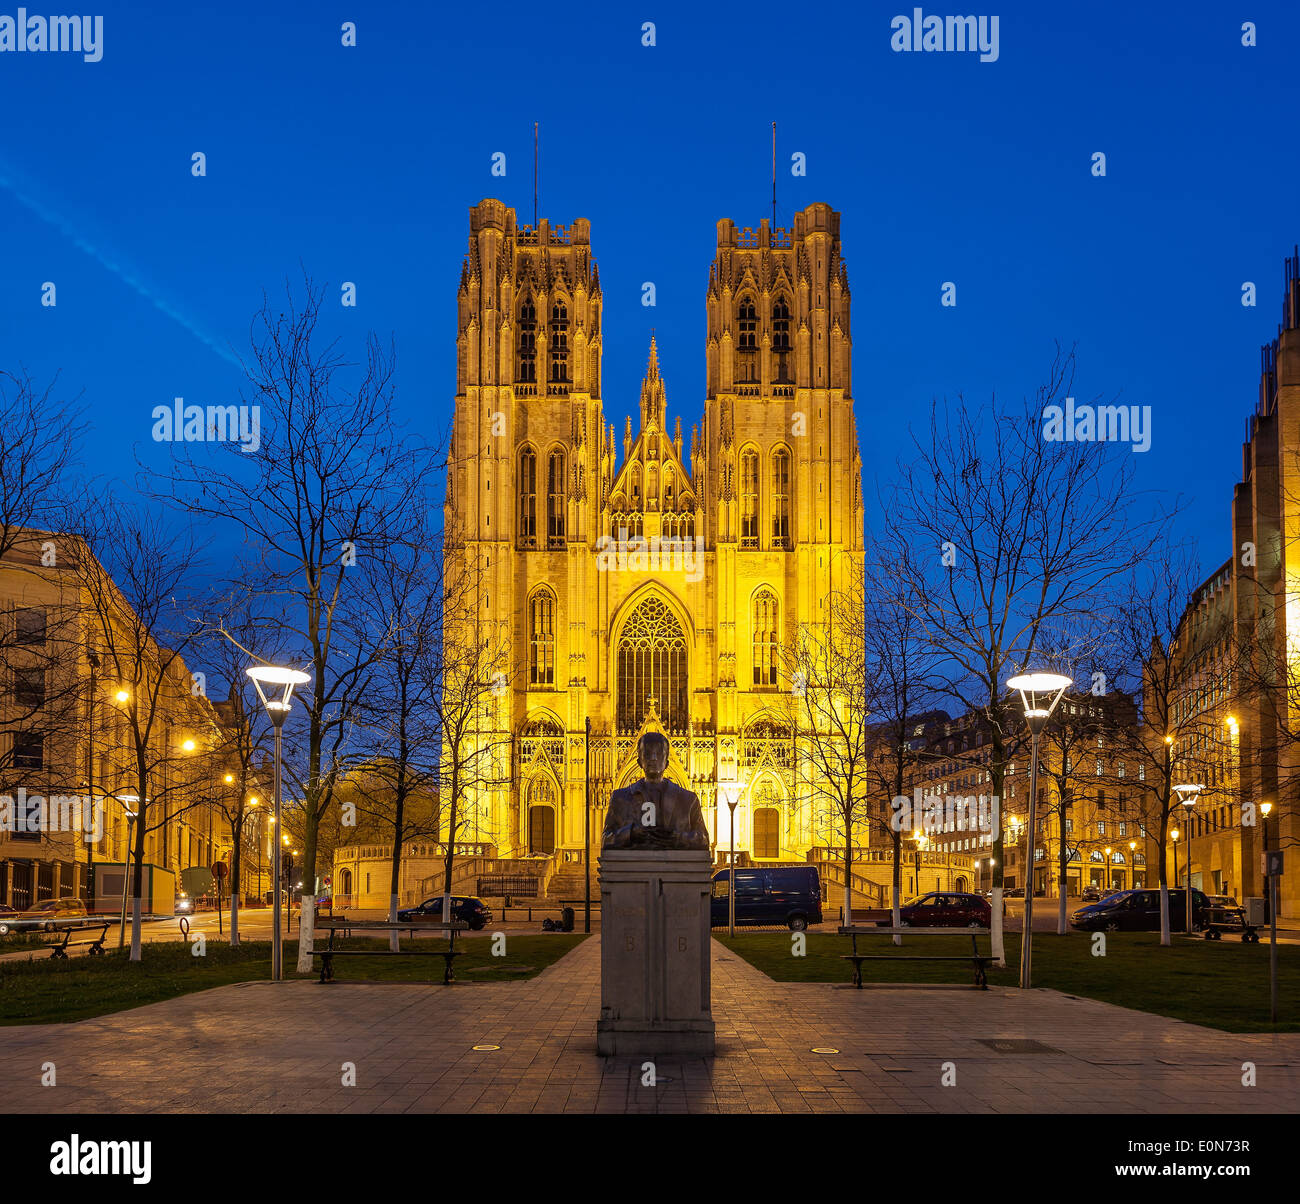 The Cathedral of St. Michael and St. Gudula is a Roman Catholic church on the Treurenberg Hill in Brussels, Belgium. - Stock Image